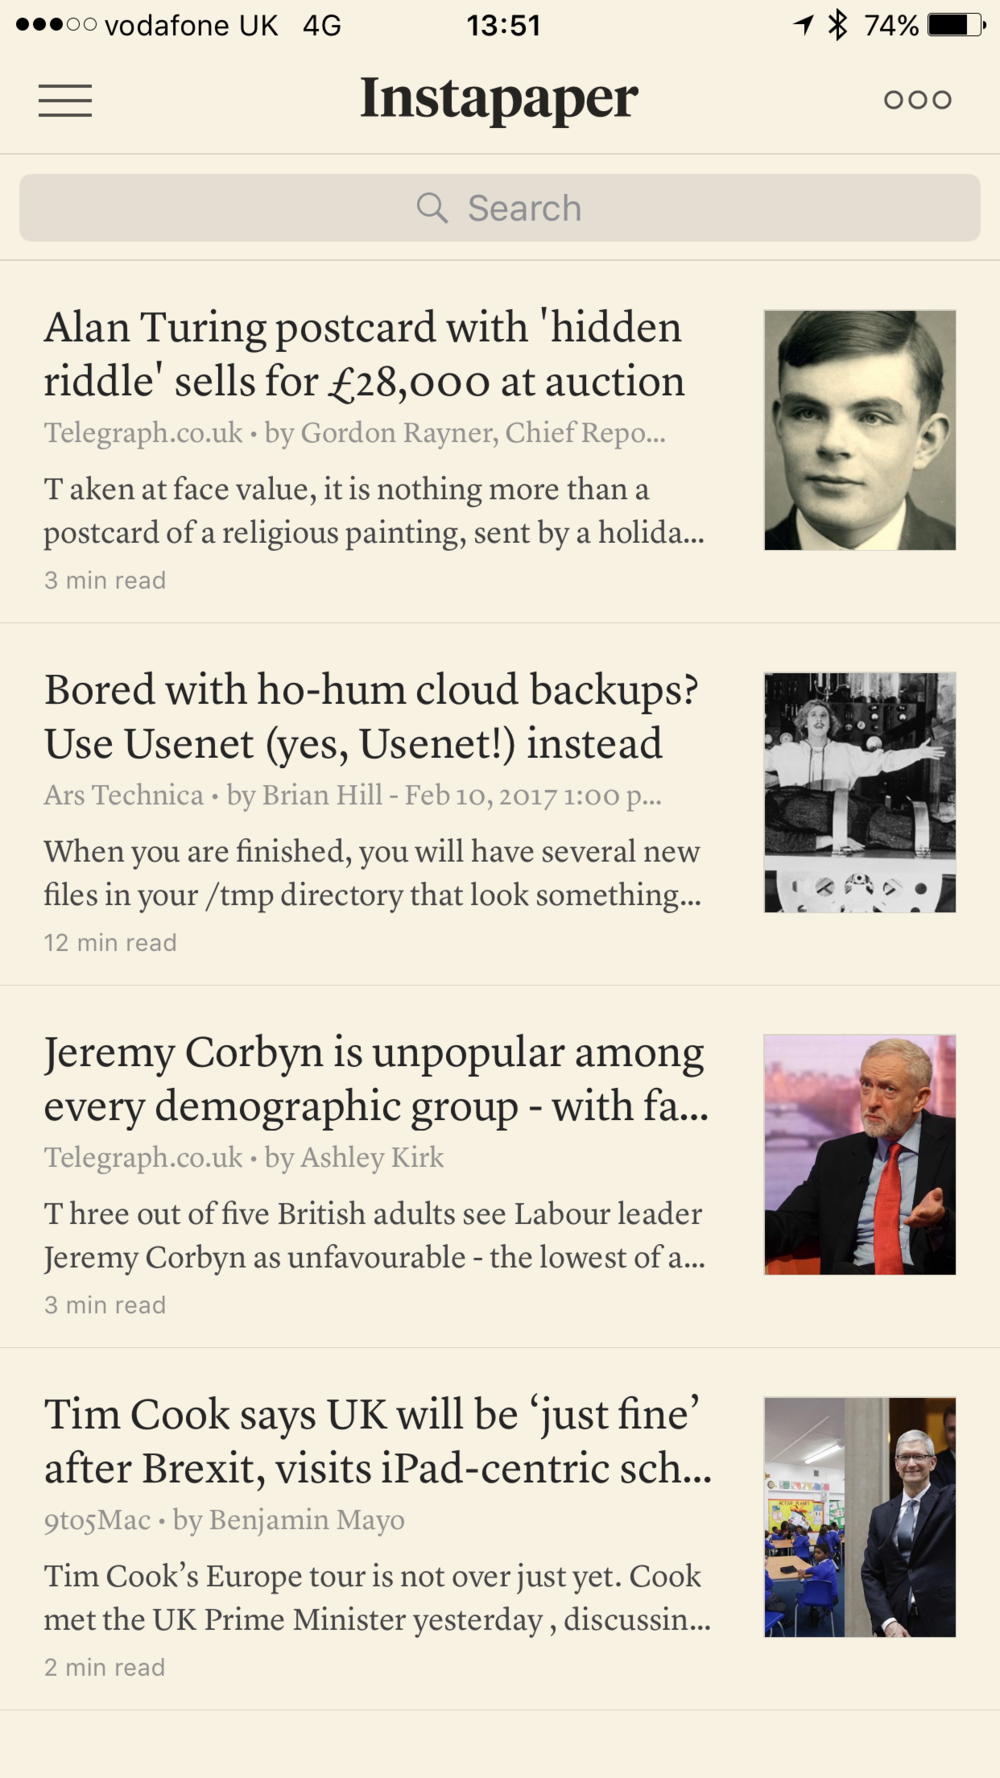 Up to this May Instapaper was a reliable and very useful tool for collating articles from all over the web. But then it disappeared and has not returned for over a month